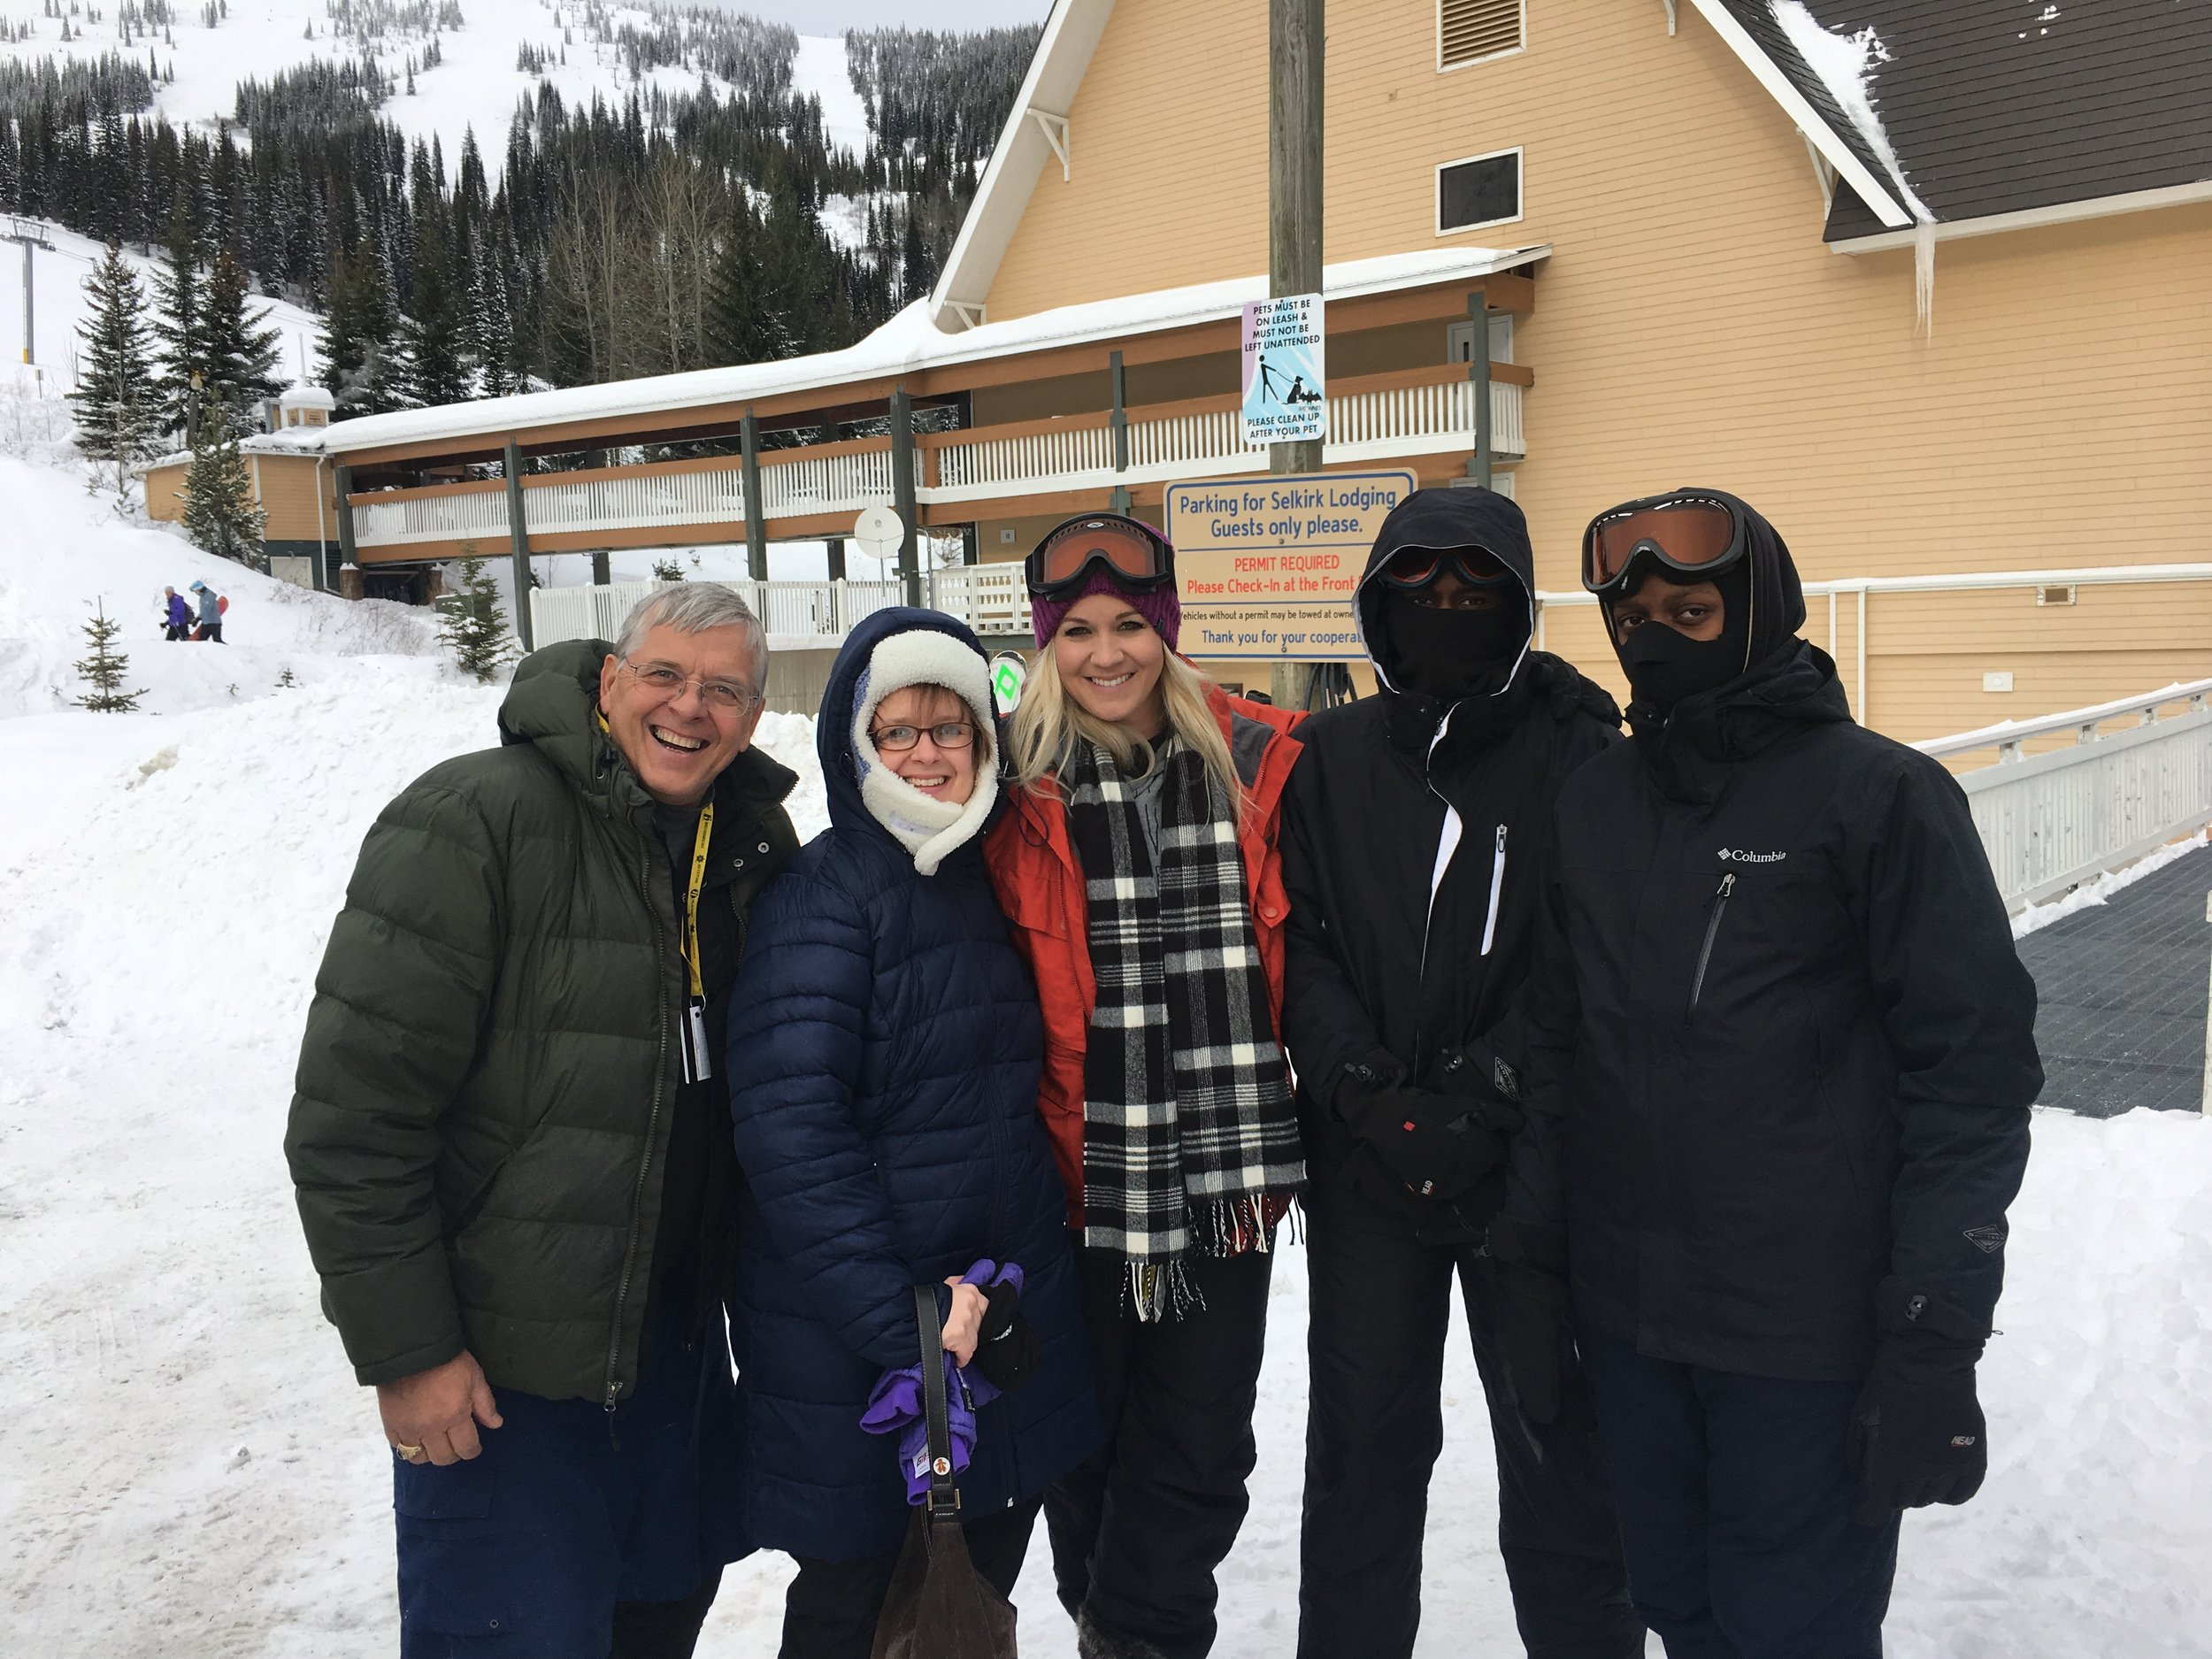 Skiing with most of the family...